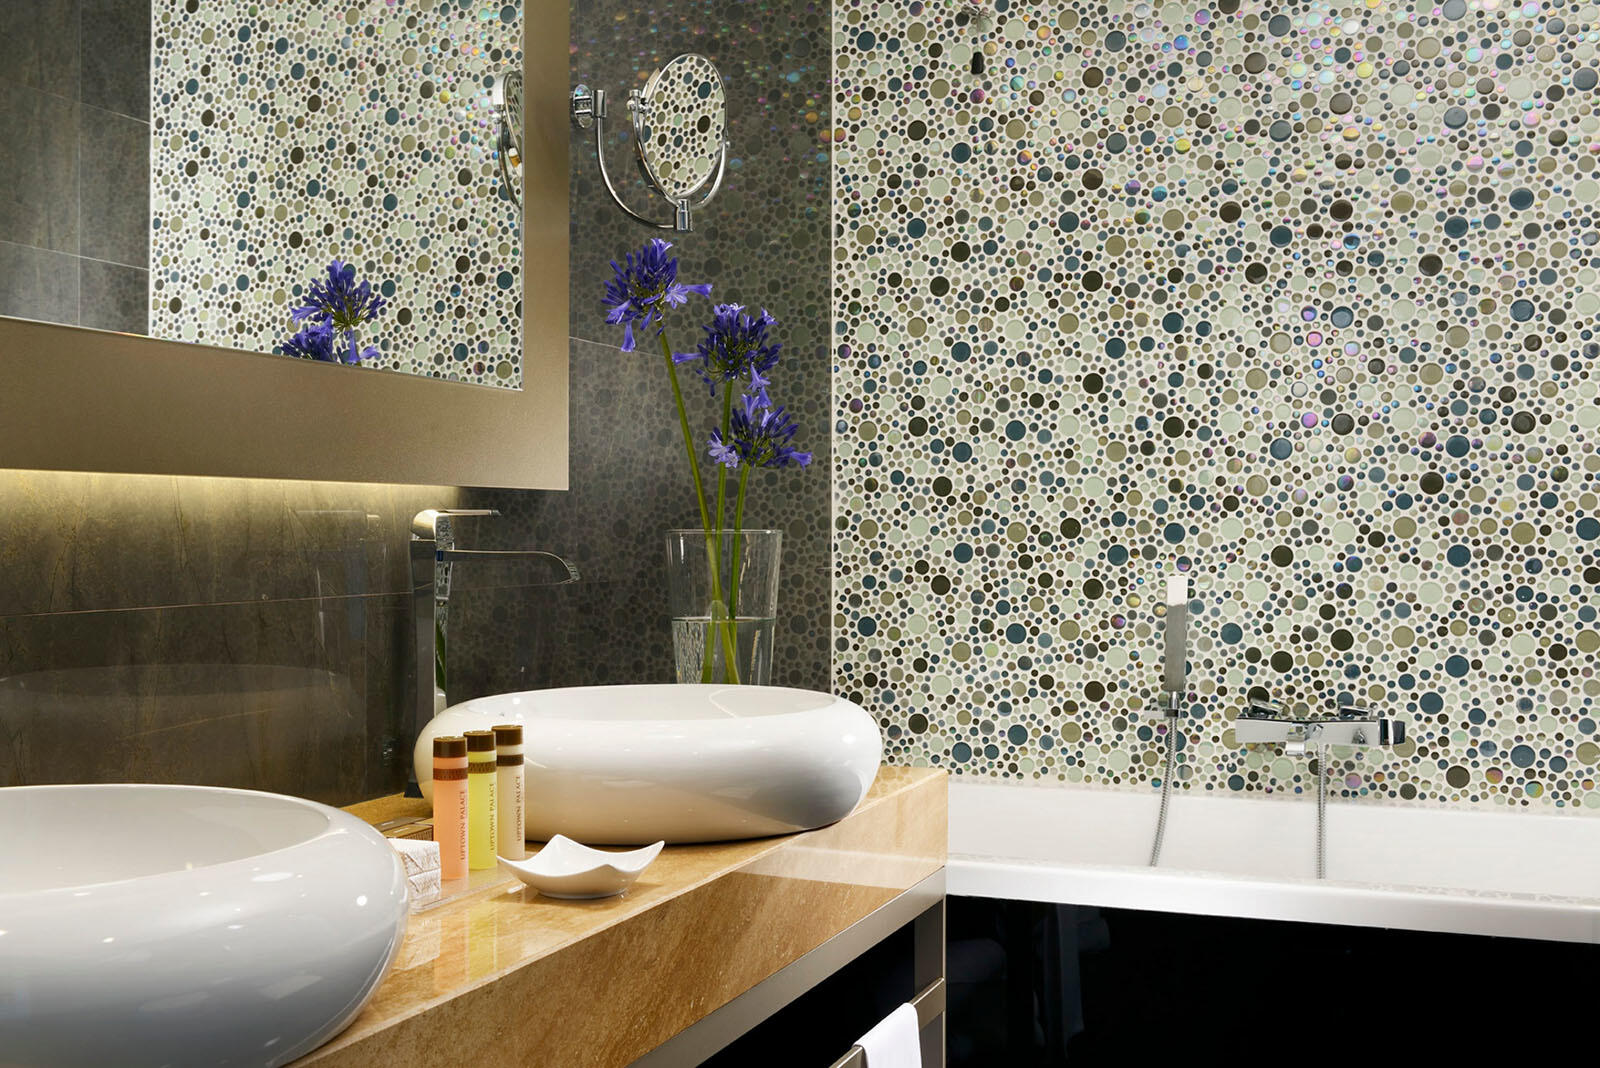 Executive Suite Bathroom at Uptown Palace in Milan